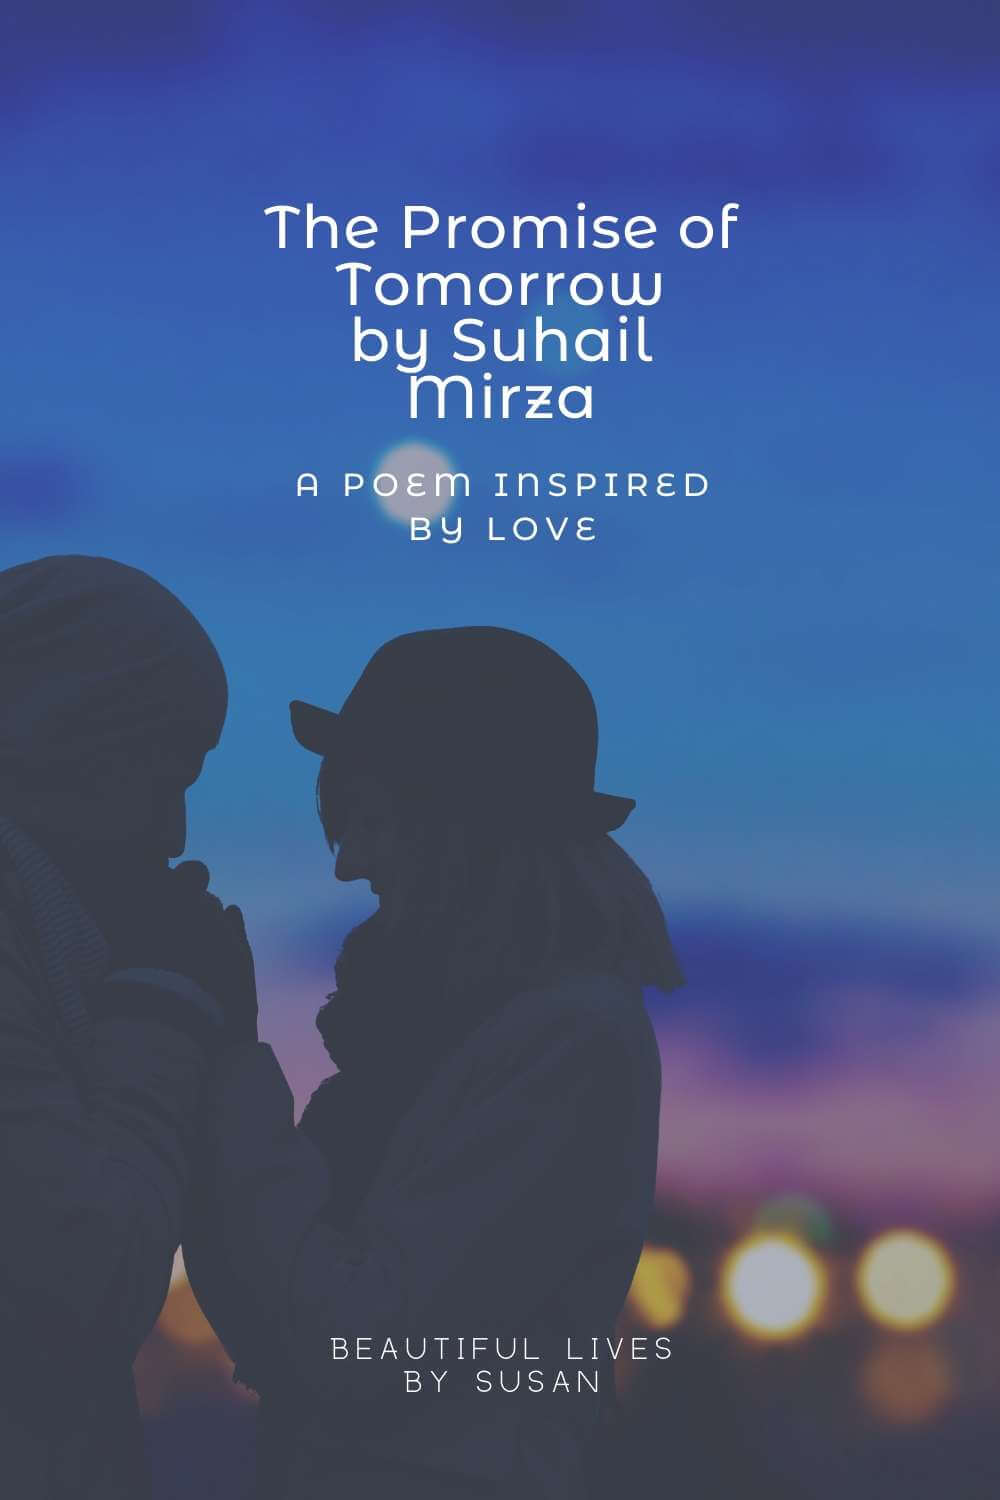 The Promise of Tomorrow by Suhail Mirza